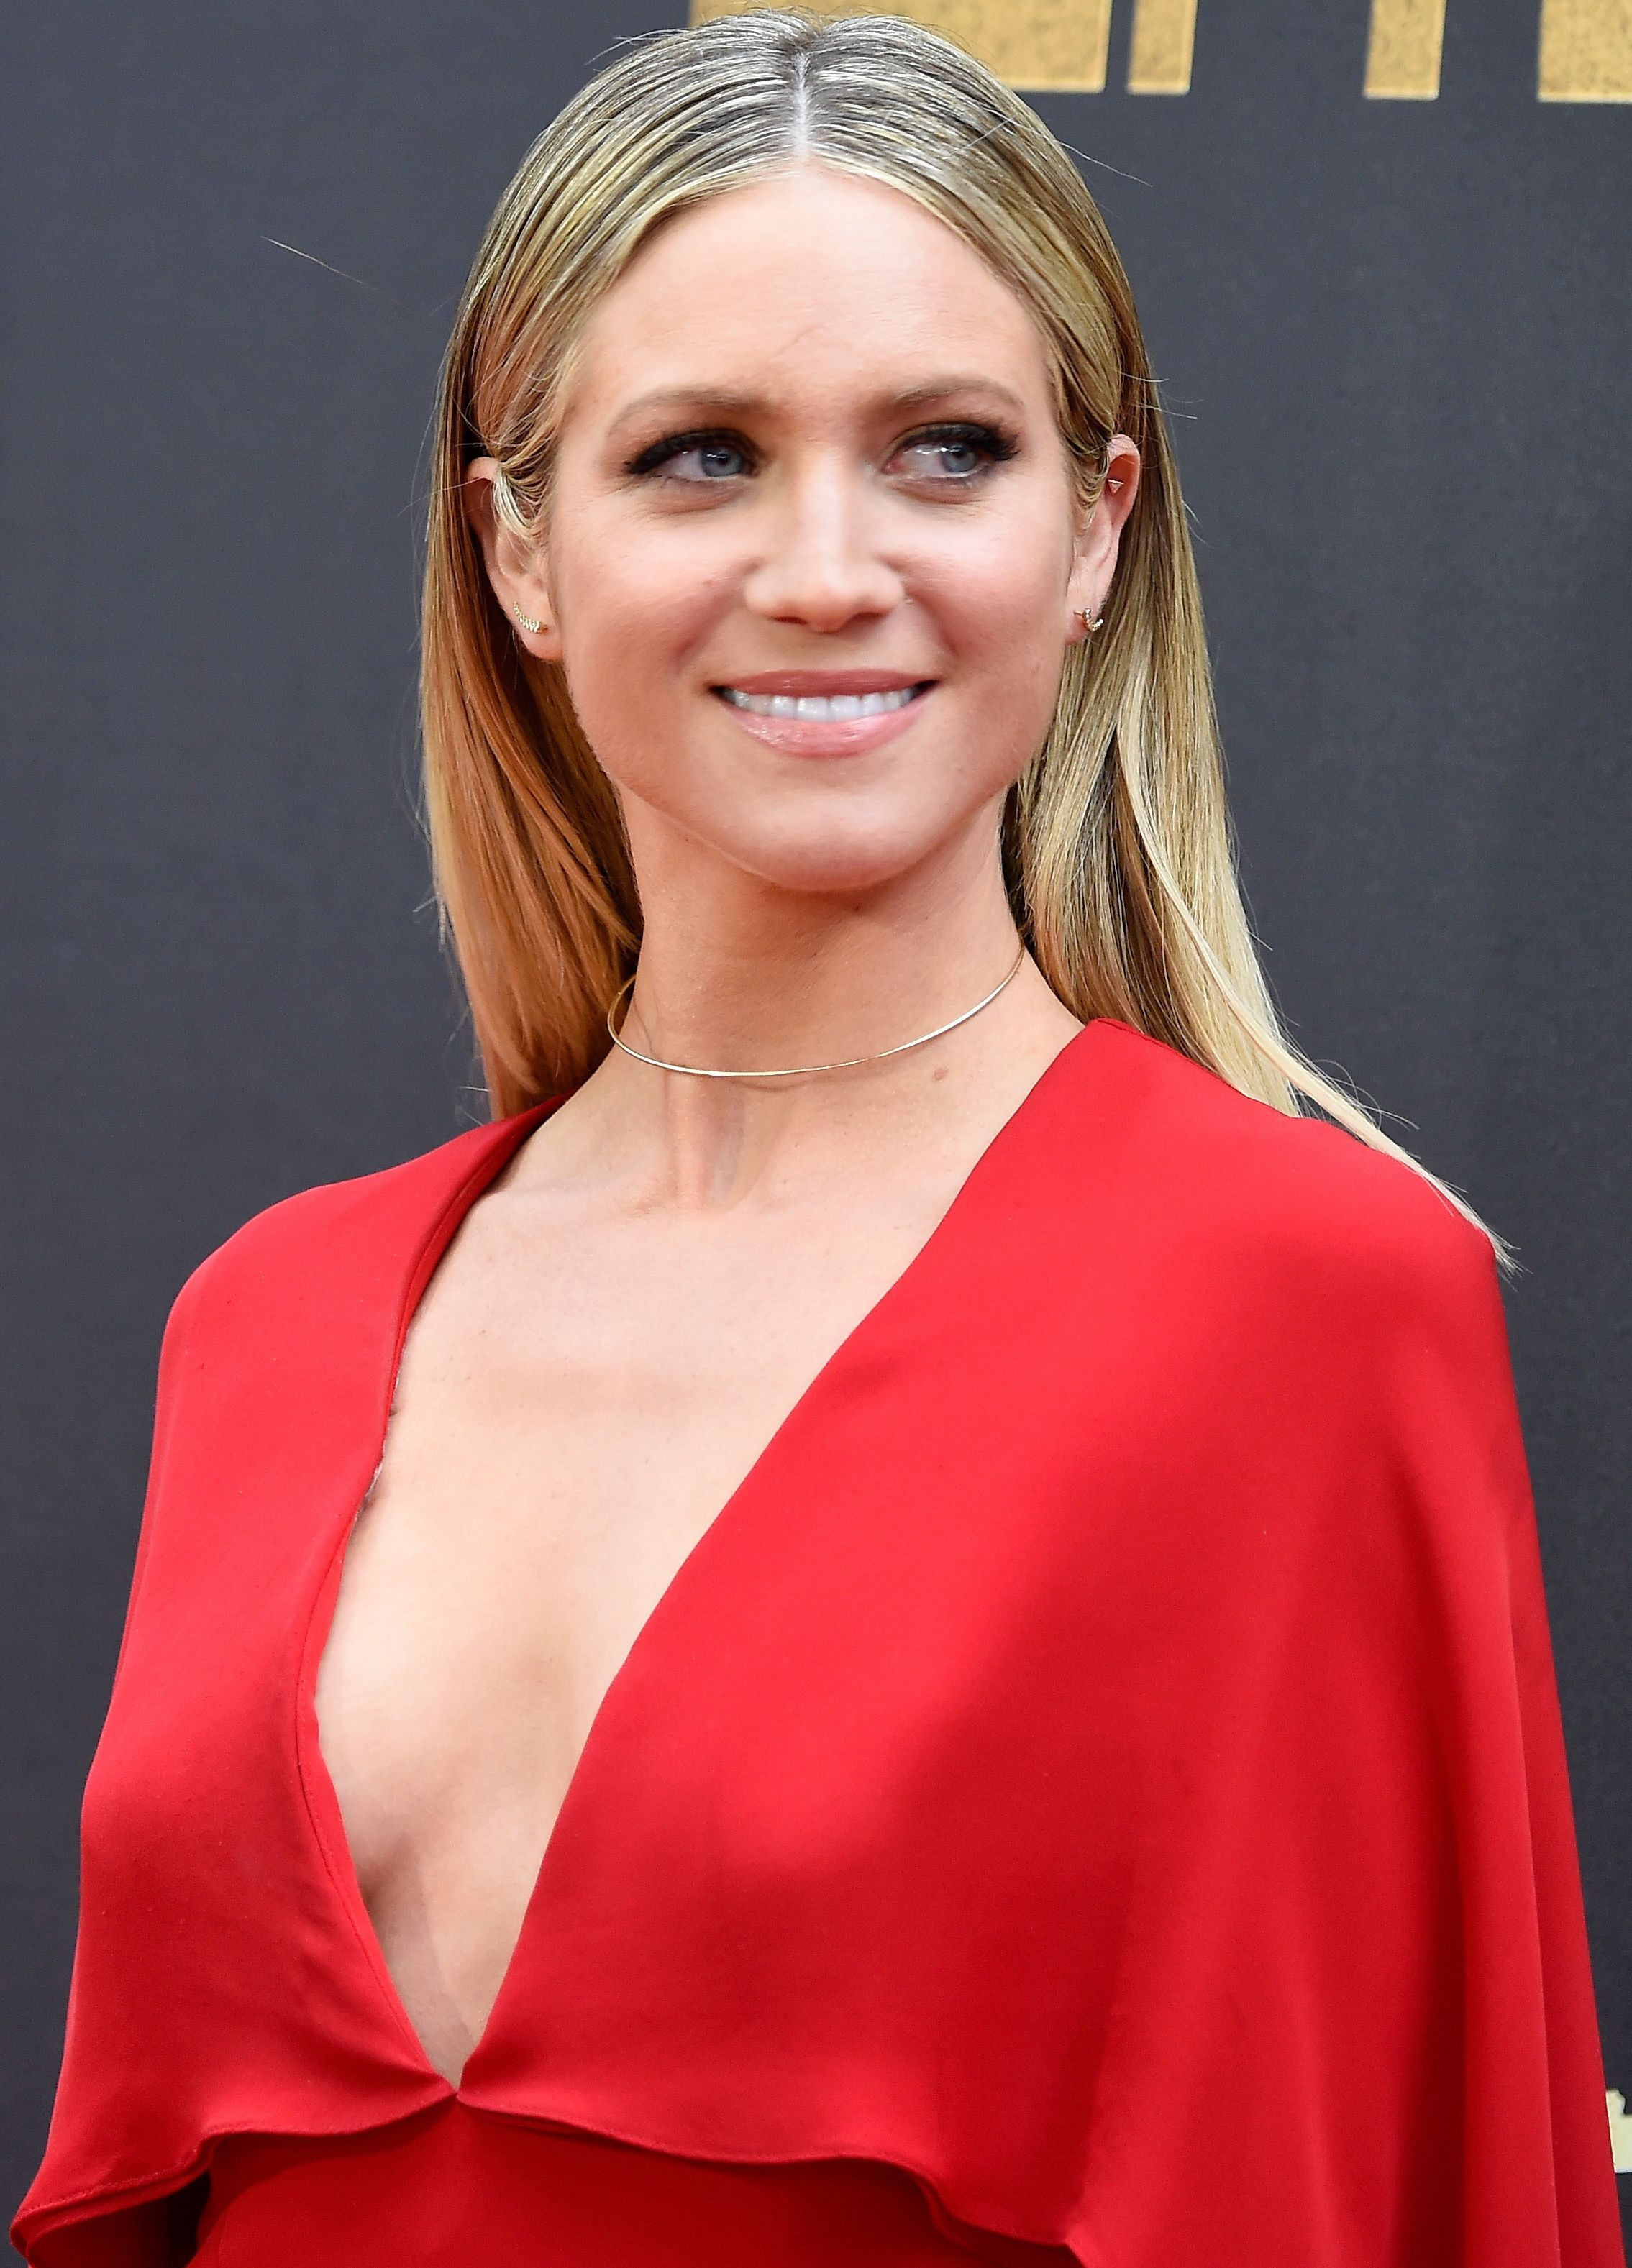 Brittany Snow | Brittany Snow | Pinterest | Brittany snow Brittany Snow